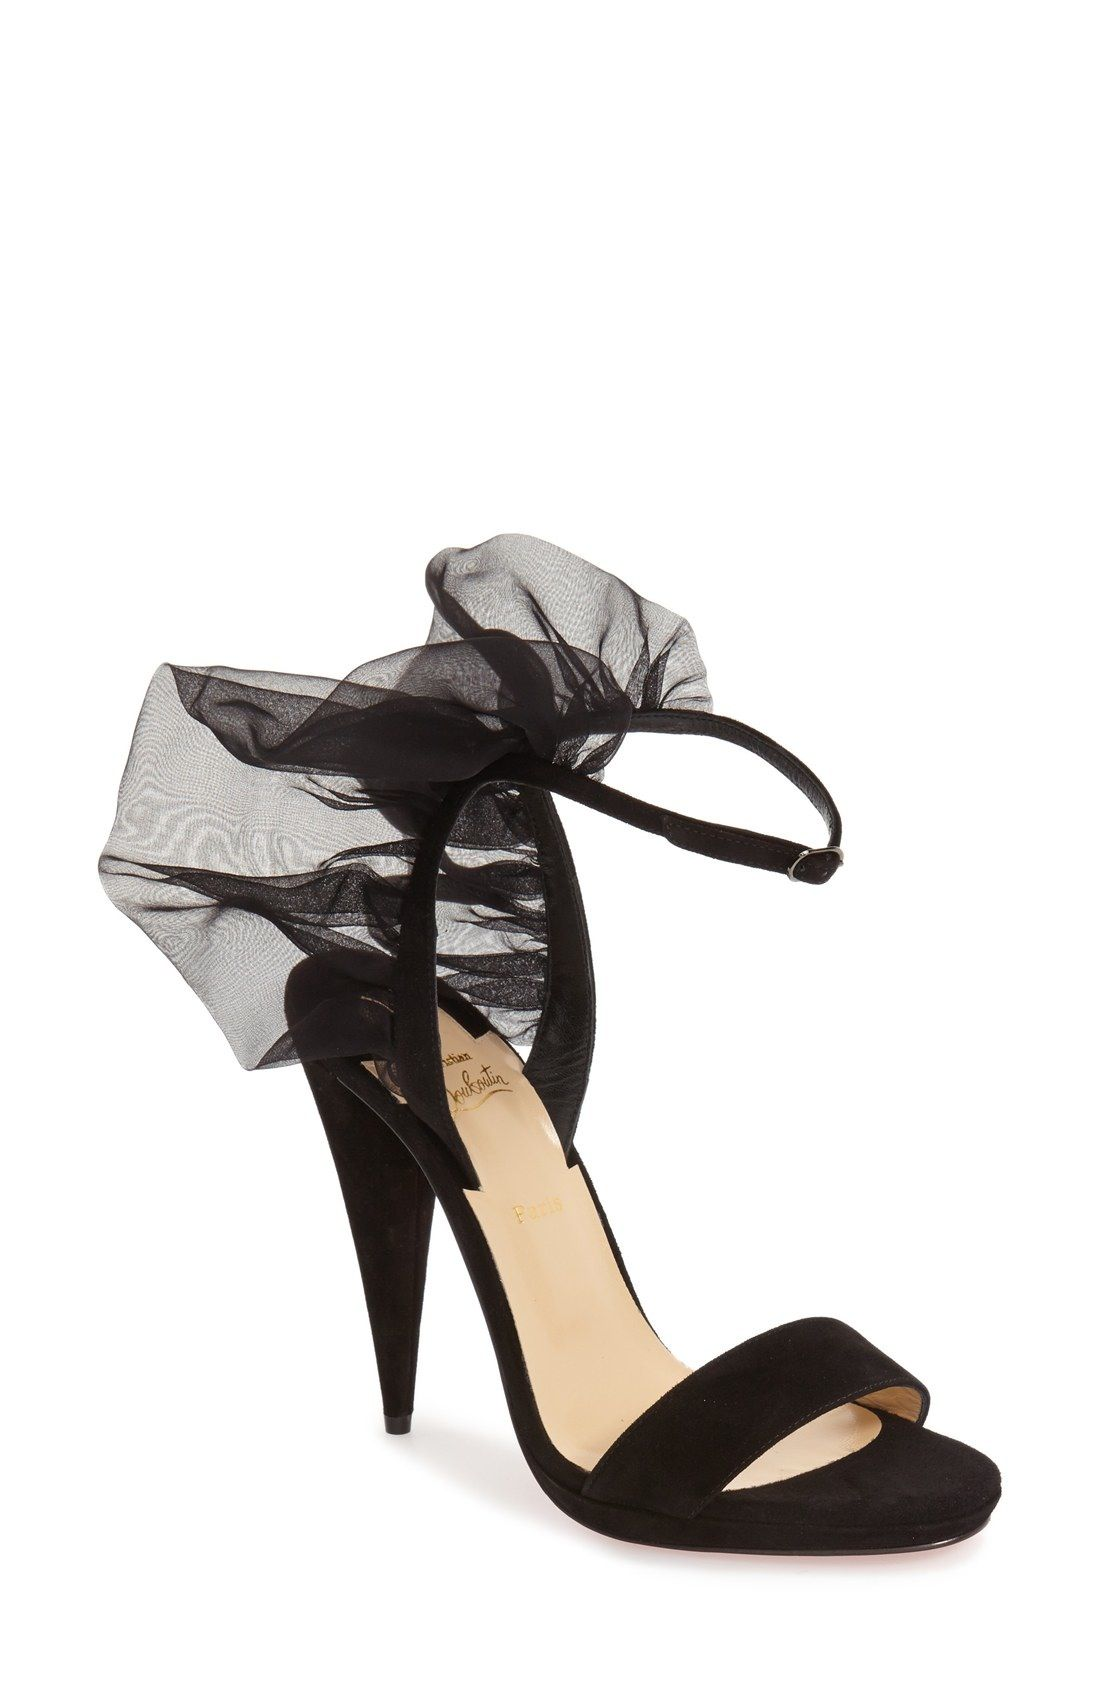 ca2302751884 Christian Louboutin  Jacqueline  Sandal available at  Nordstrom ...